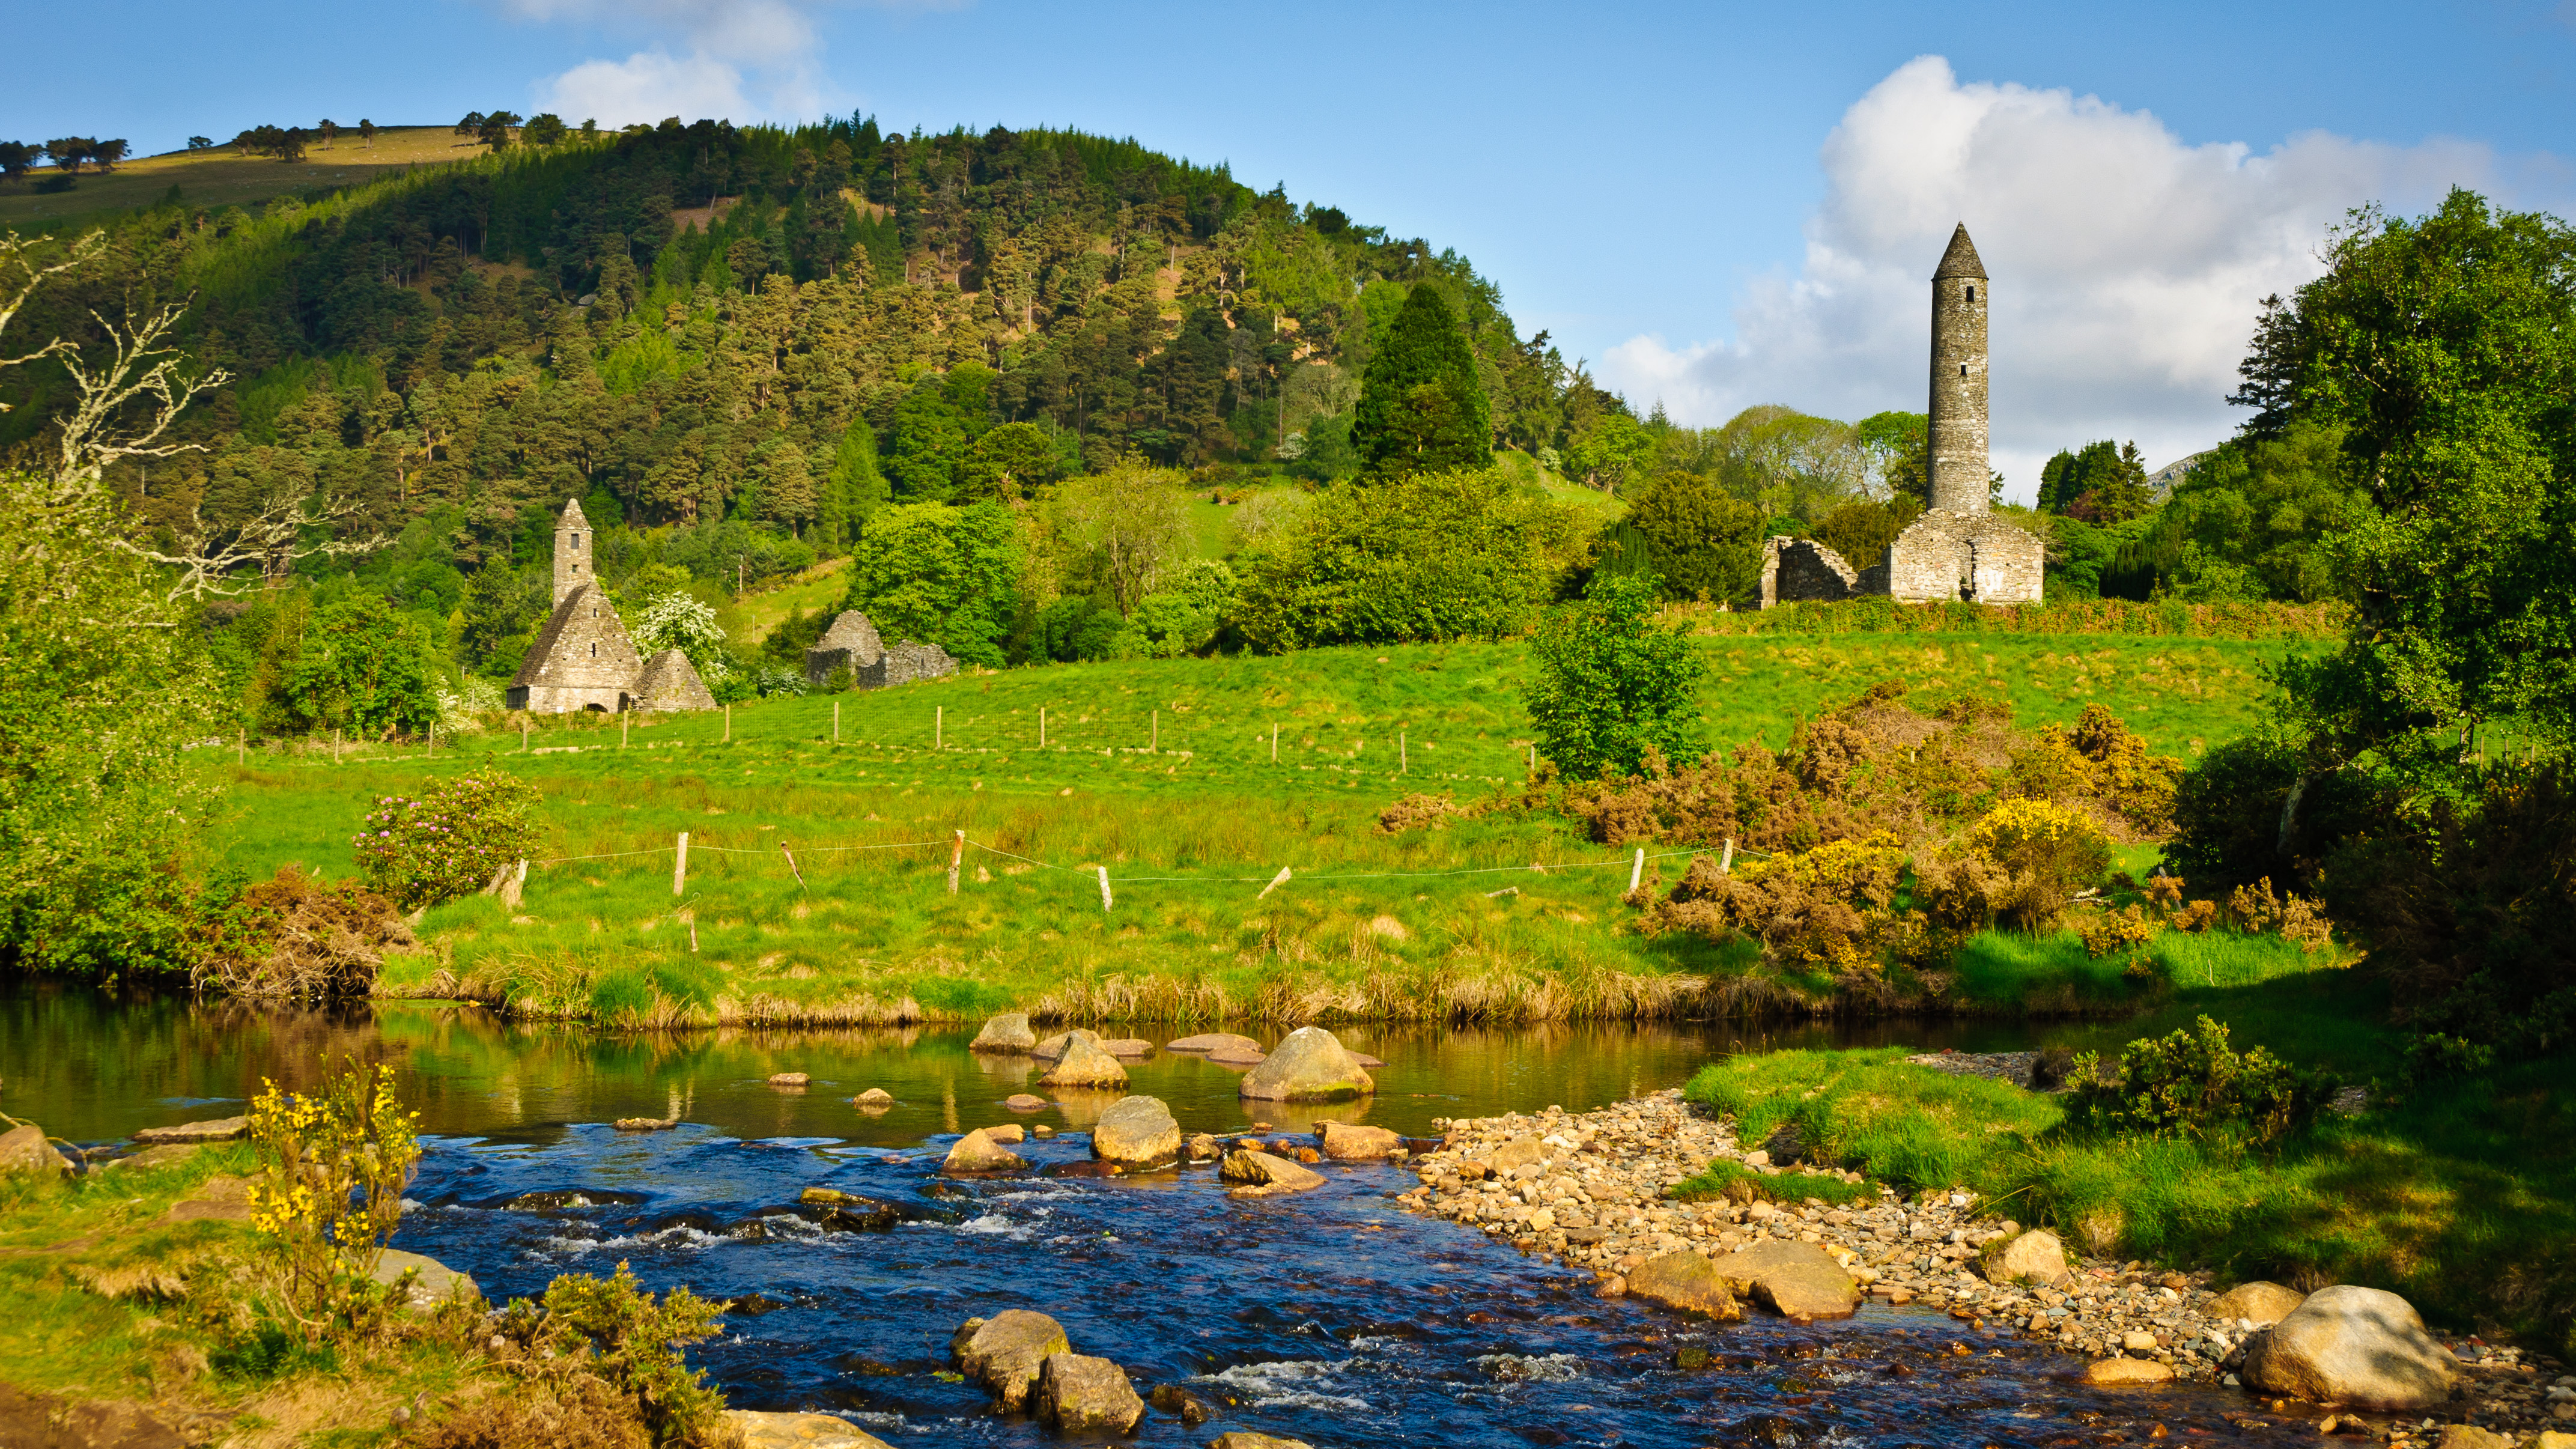 Wicklow Ireland Pictures and videos and news   CitiesTipscom 4288x2412